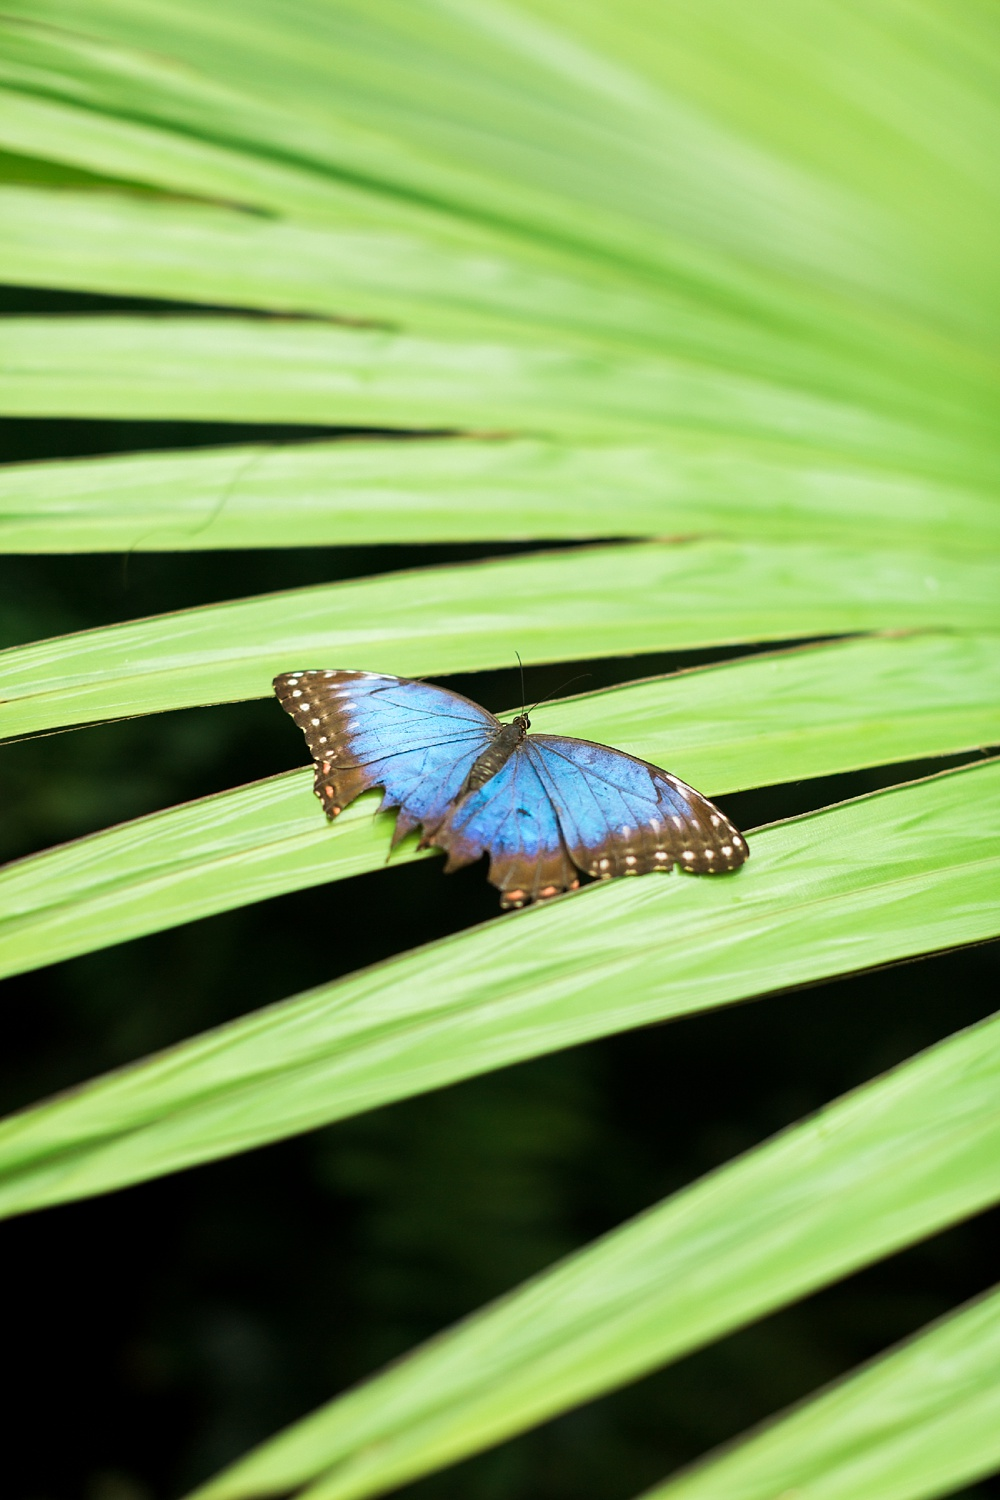 blue butterfly rest with it's wings open on a green palm frond